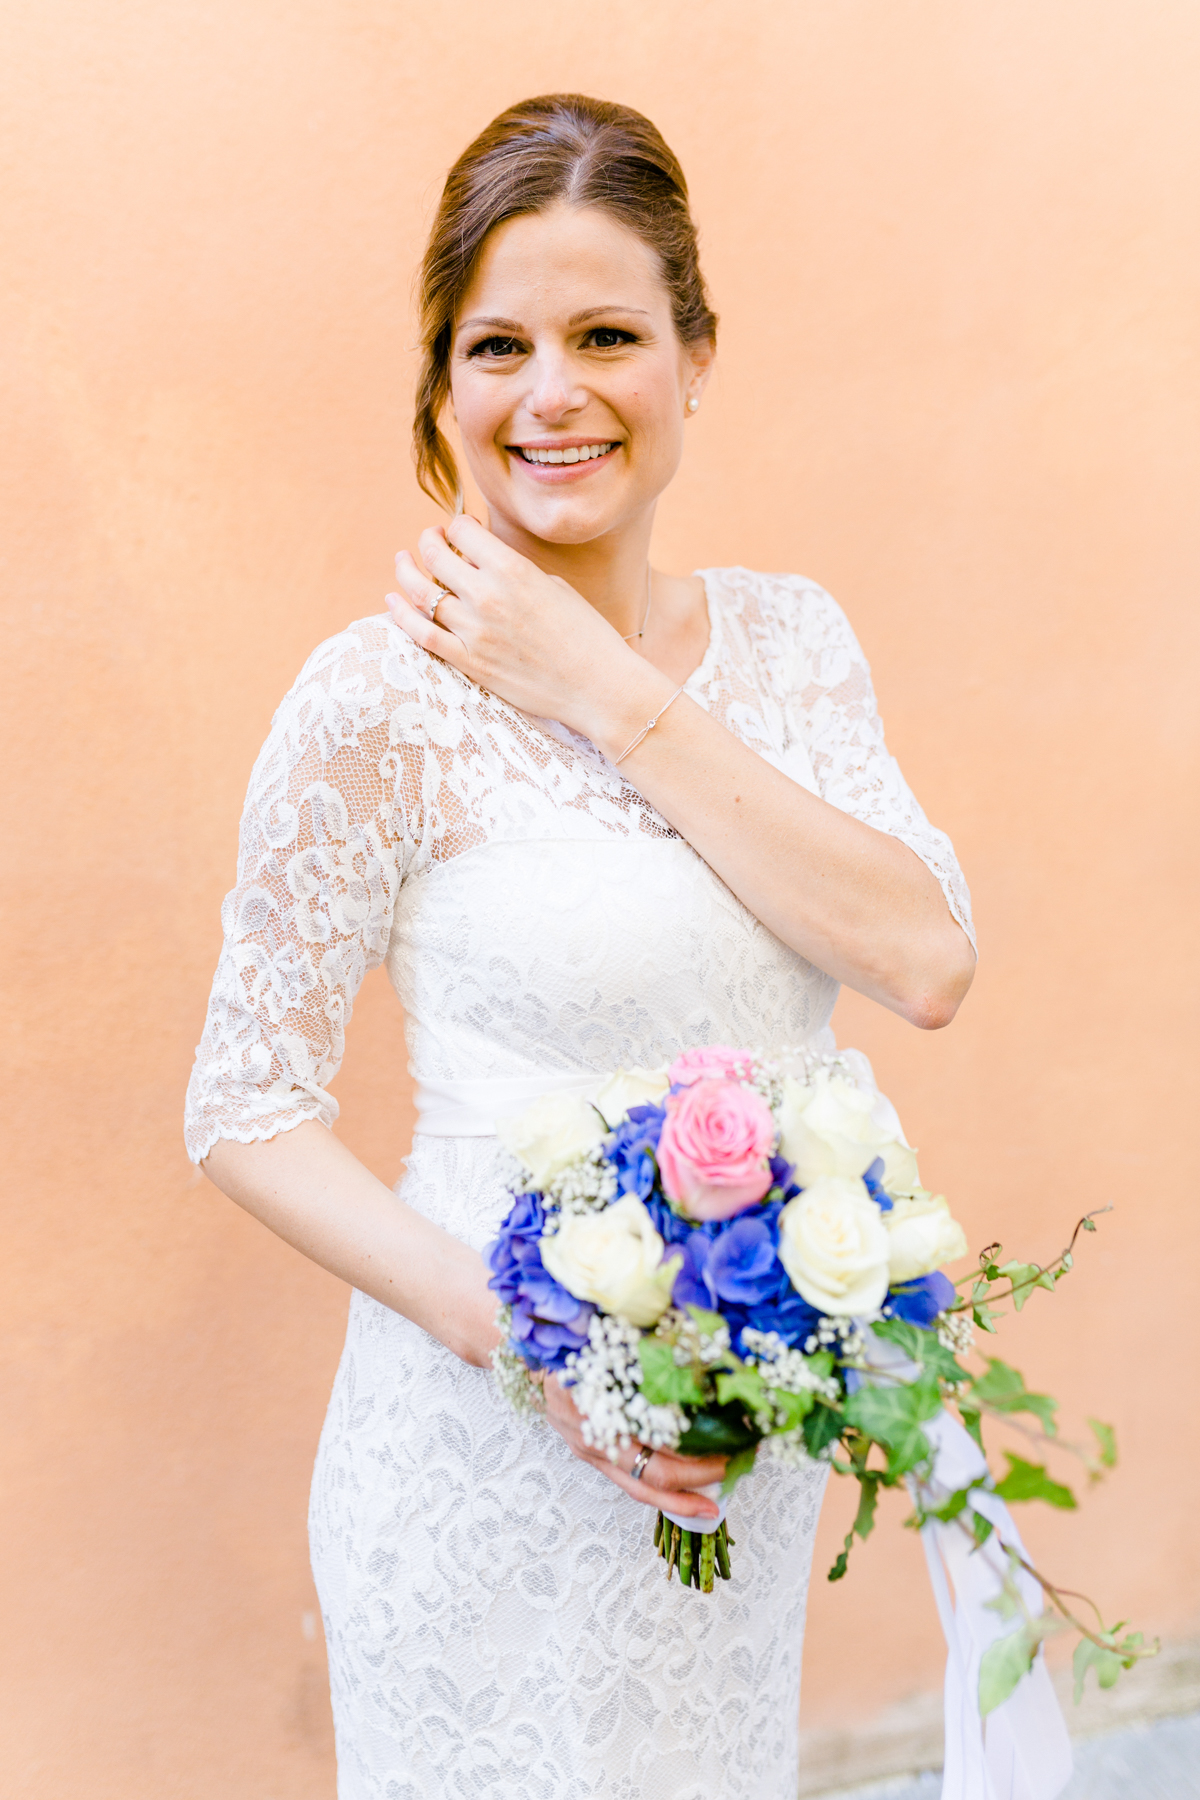 Romy_Alfons_Destination_Wedding_Tuscany_Toskana_Italy_me_him_photography-231